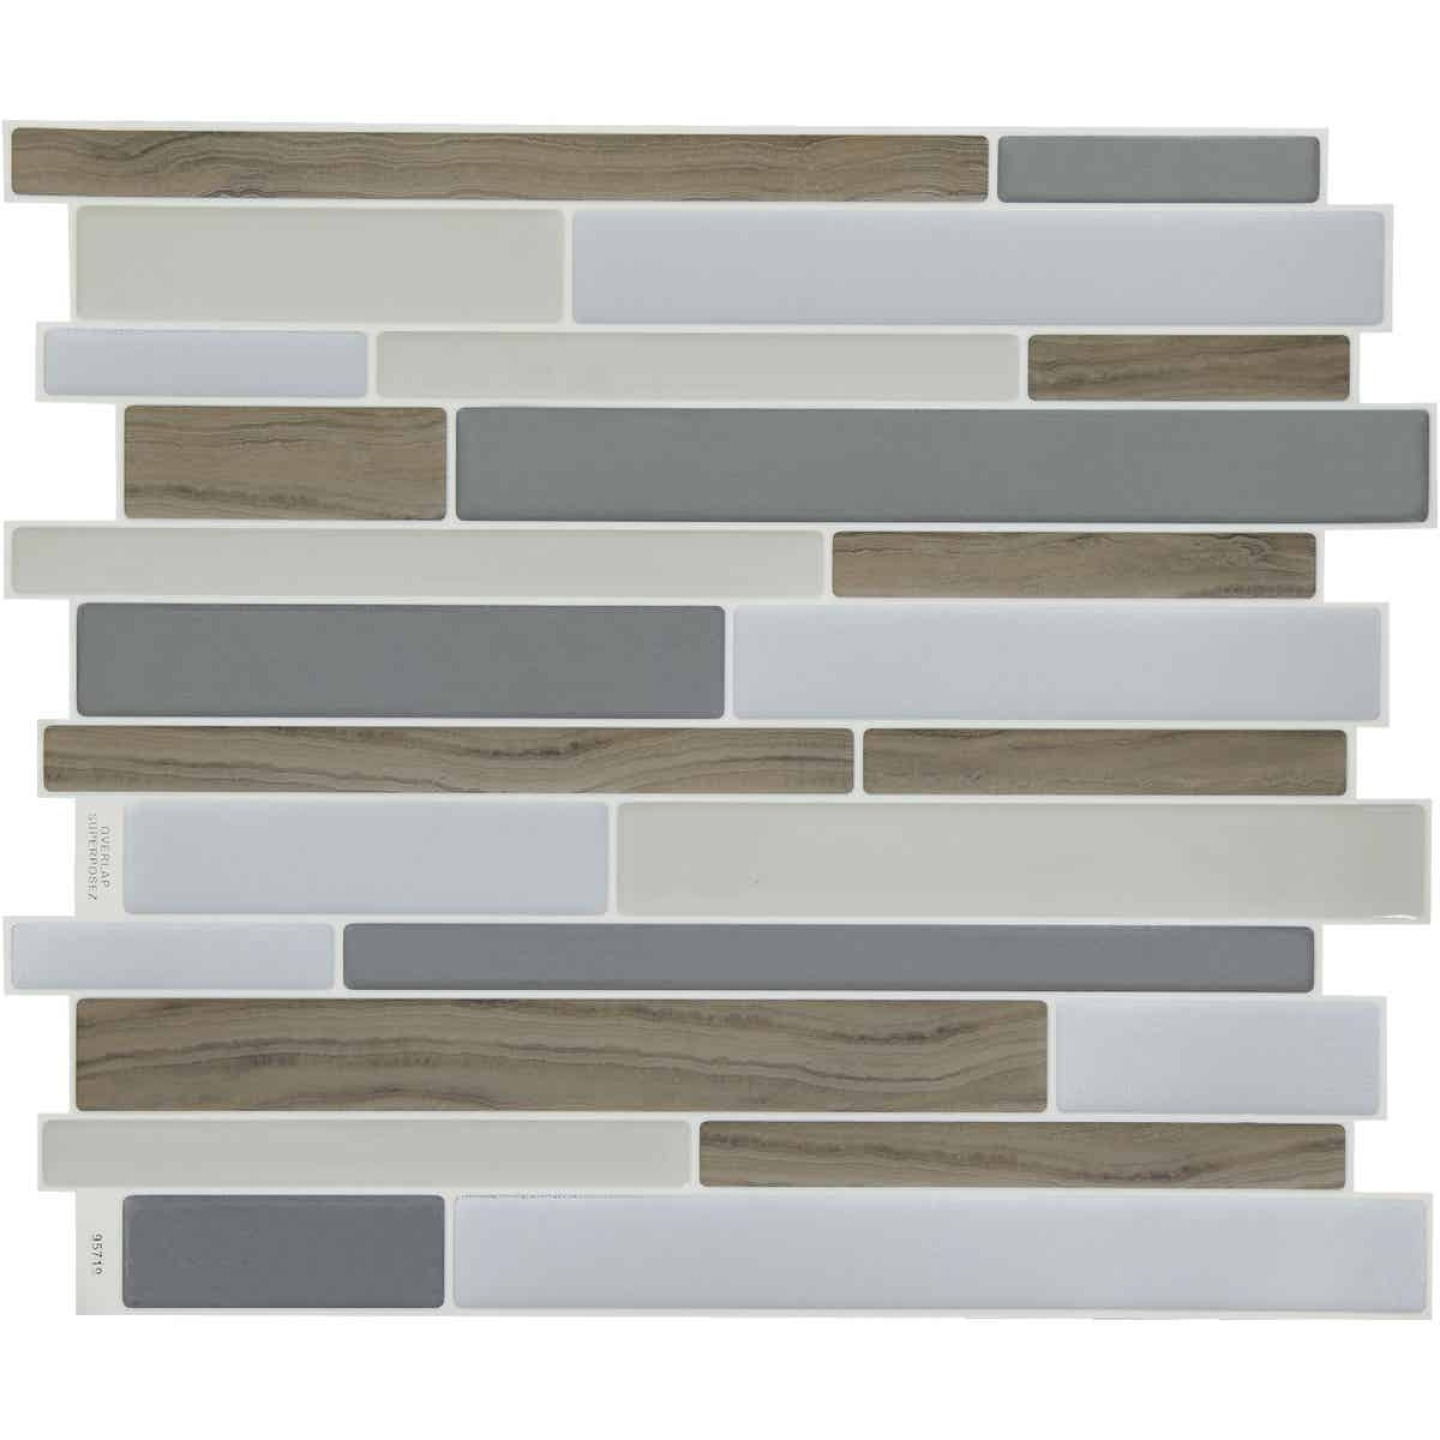 Smart Tiles 9.63 In. x 11.55 In. Glass-Like Plastic Backsplash Peel & Stick, Milano Argento Mosaic (6-Pack) Image 1